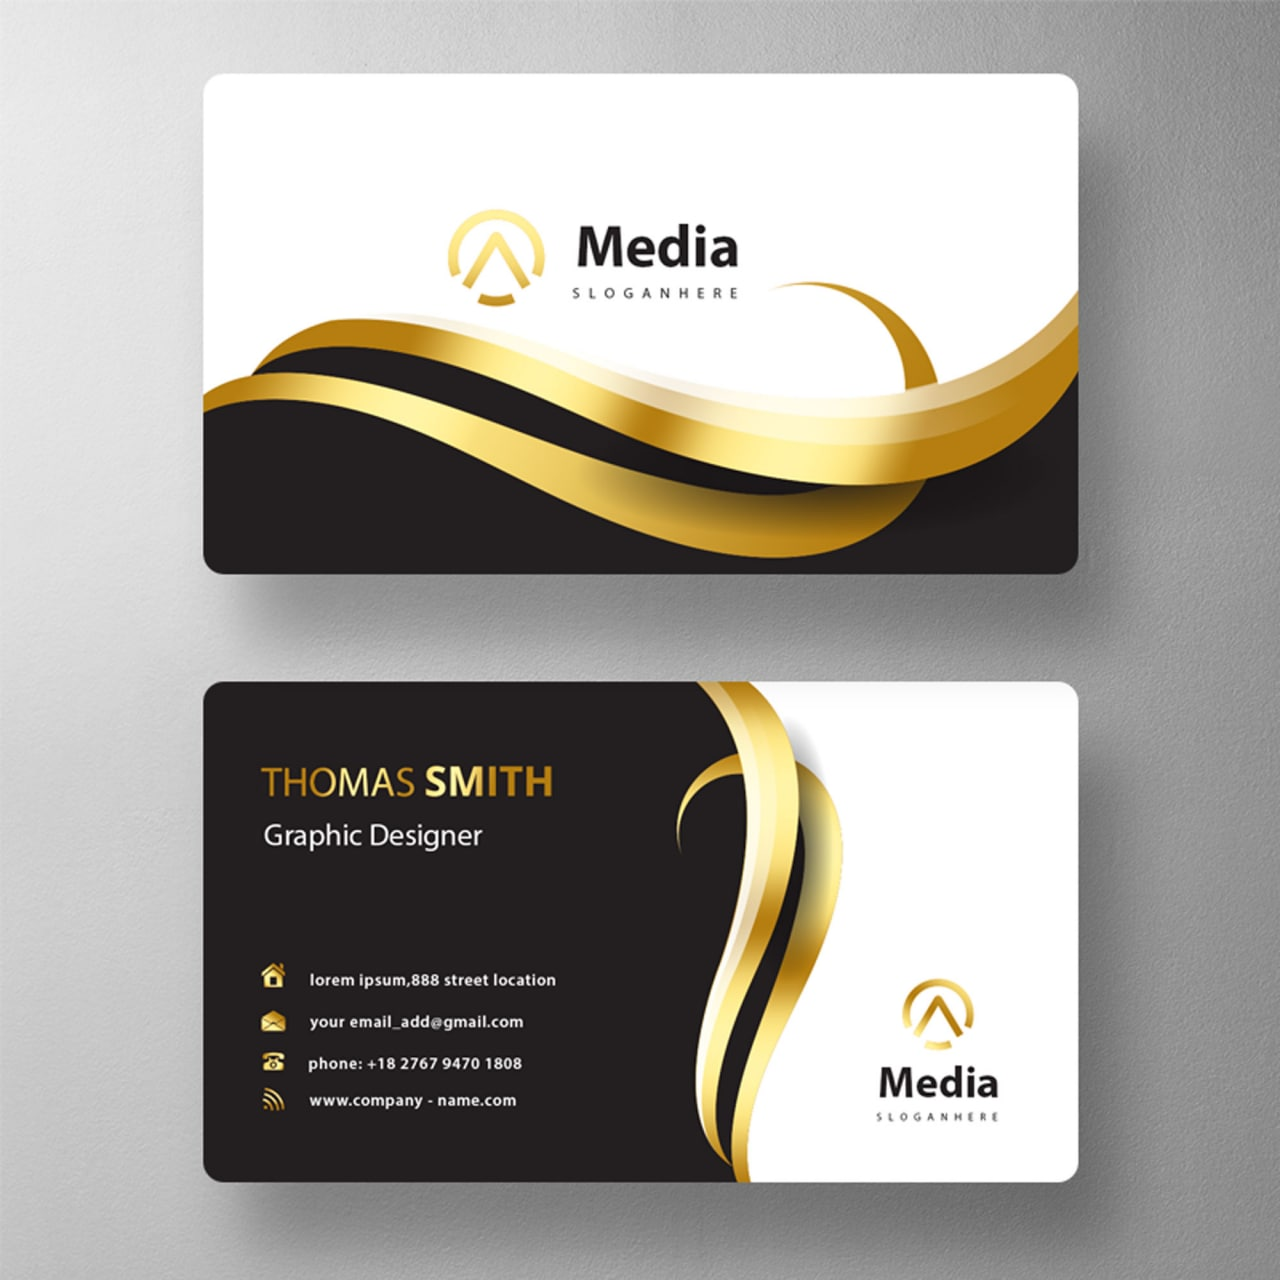 I will design a unique and professional business card for you